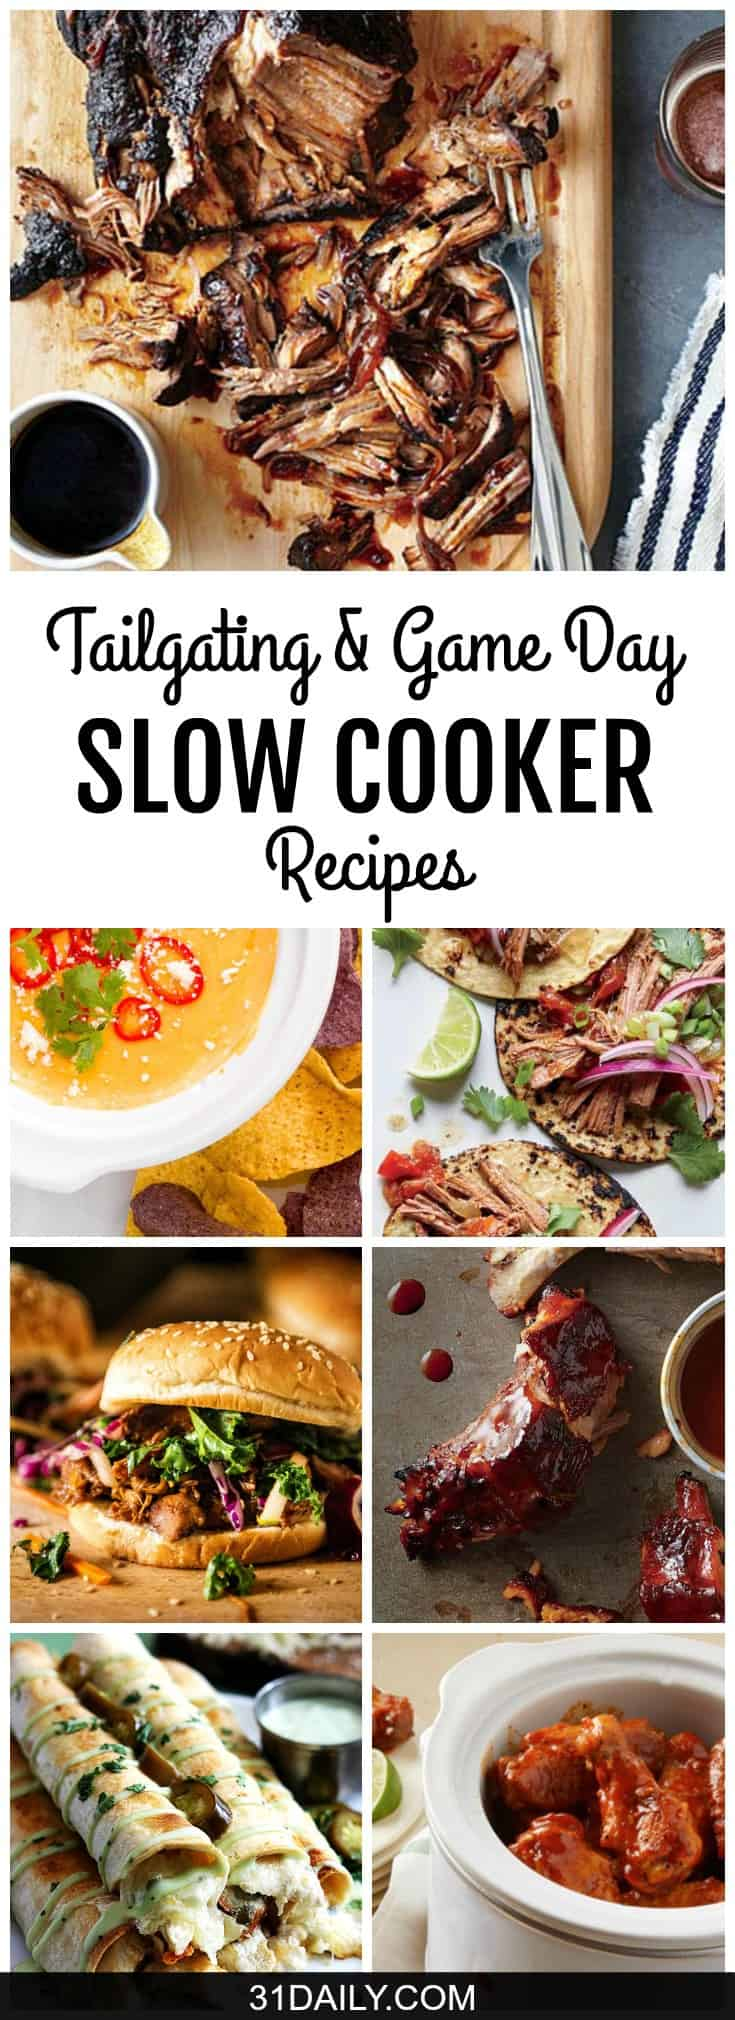 17 Easy Tailgating and Game Day Slow Cooker Recipes | 31Daily.com